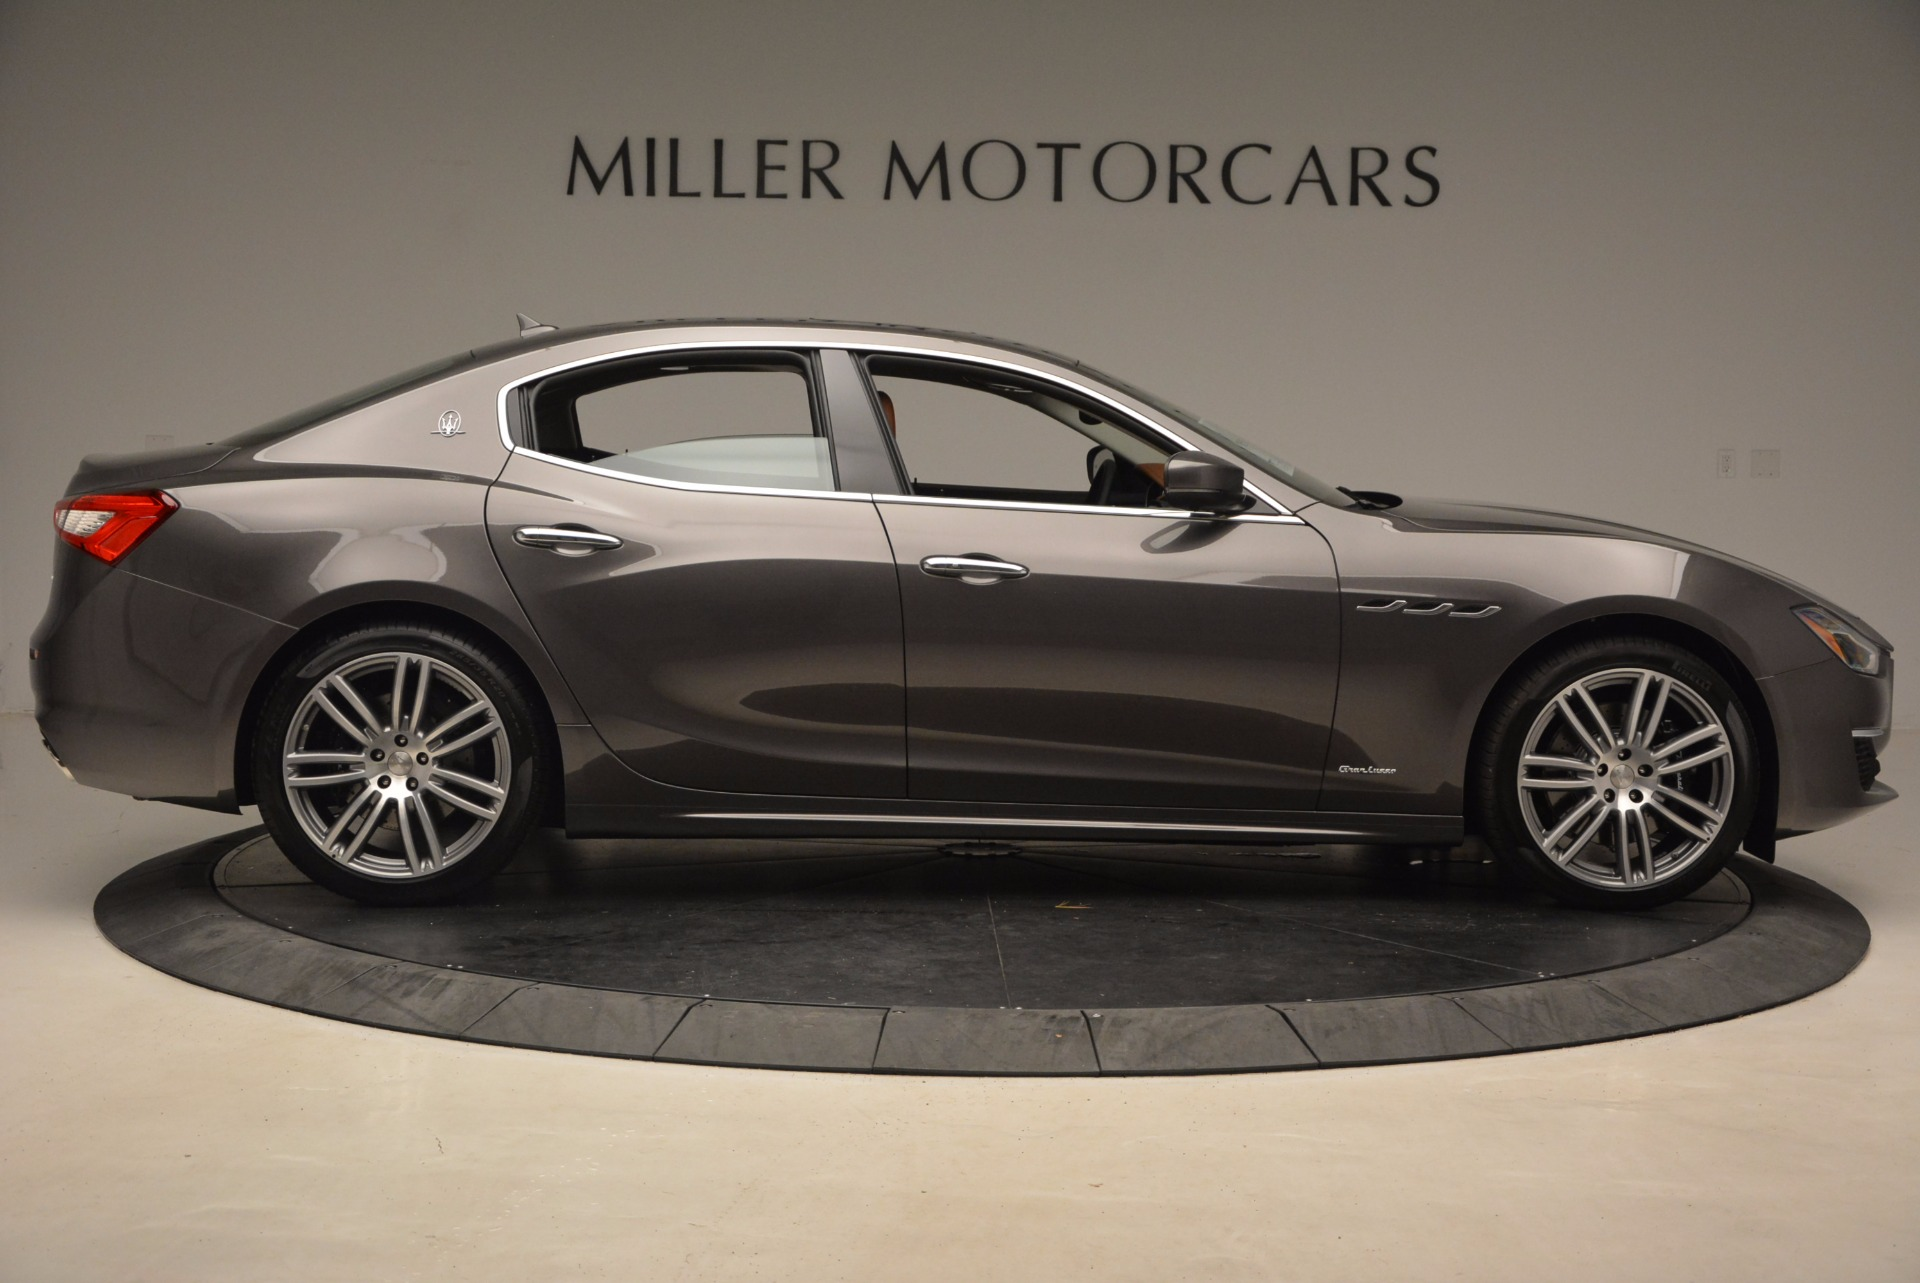 New 2018 Maserati Ghibli S Q4 GranLusso For Sale In Greenwich, CT. Alfa Romeo of Greenwich, M2005 1896_p9